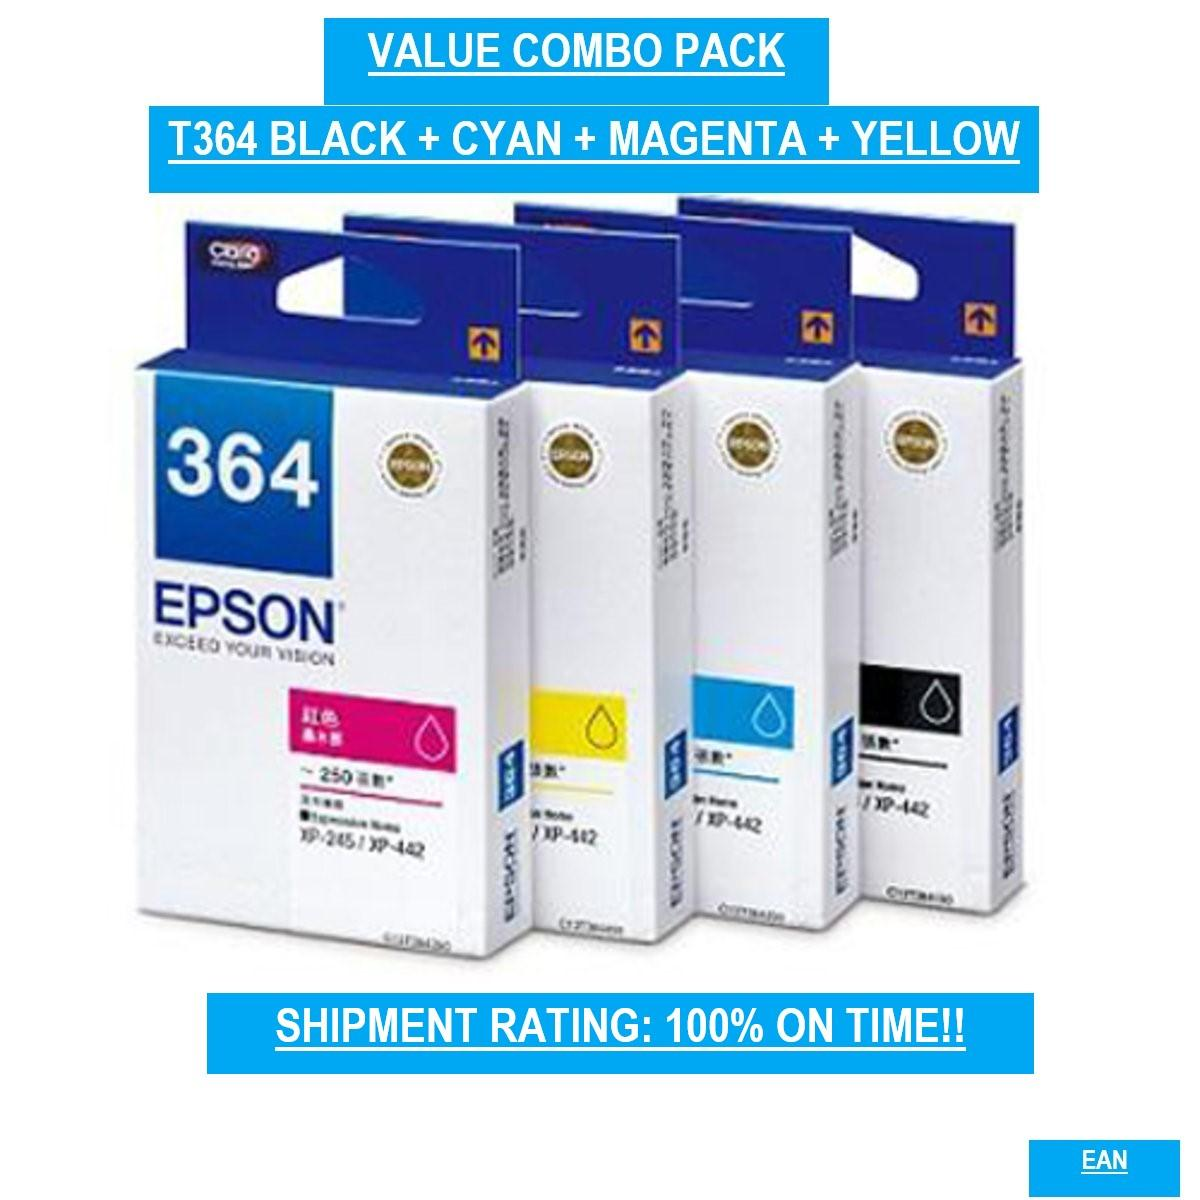 Latest Epson Ink Products | Enjoy Huge Discounts | Lazada SG